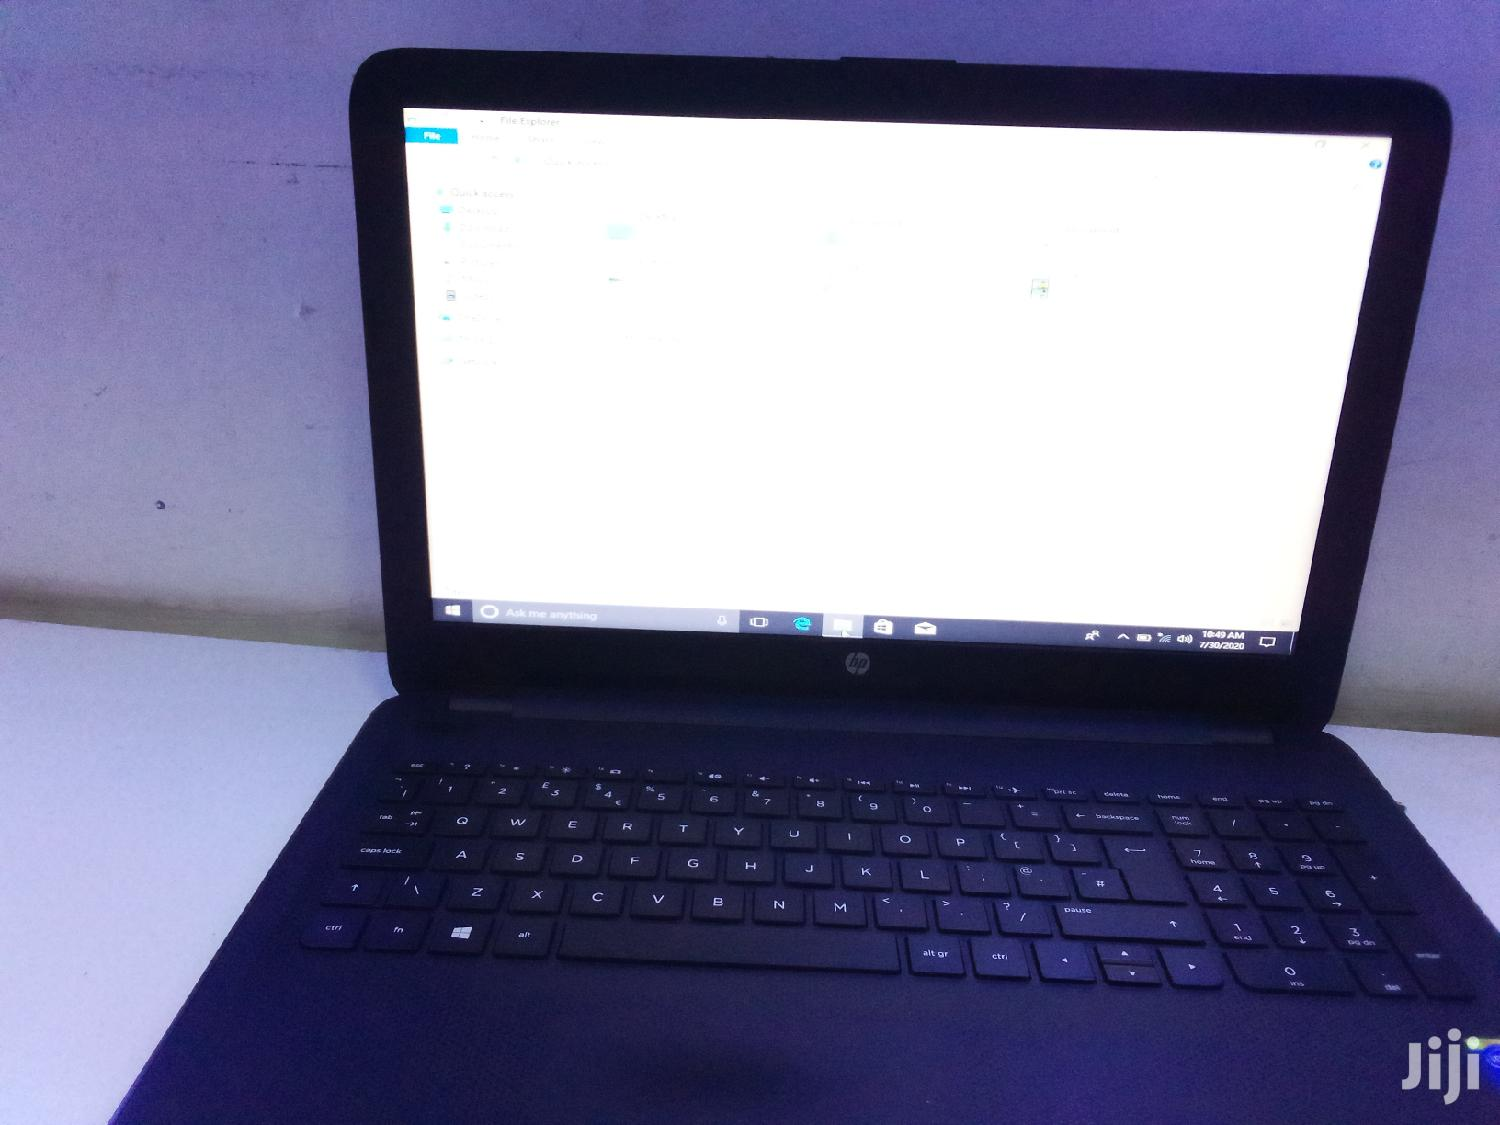 Laptop HP 250 G2 4GB Intel Core I5 HDD 500GB | Laptops & Computers for sale in Kampala, Central Region, Uganda